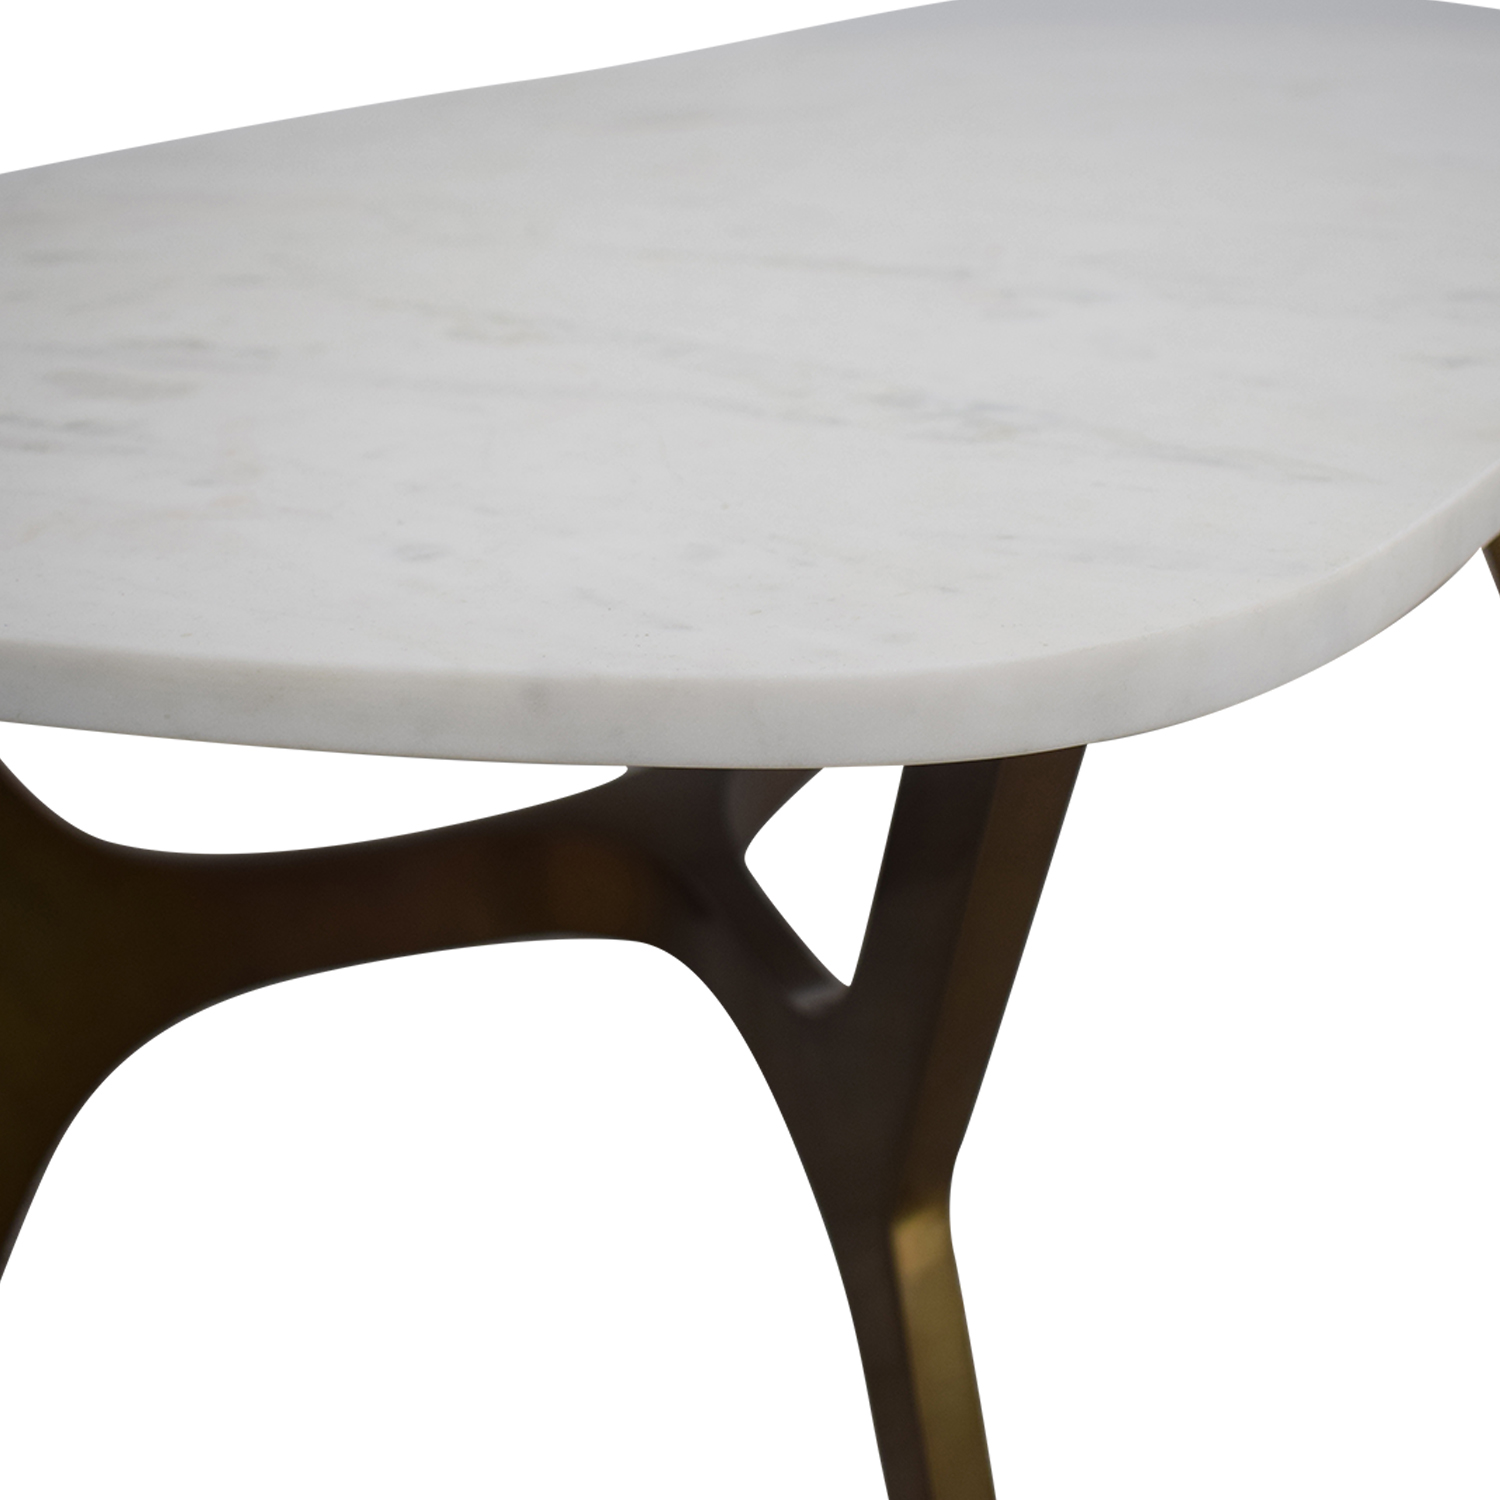 Crate & Barrel Crate & Barrel Elke Marble Coffee Table With Brass Base Tables